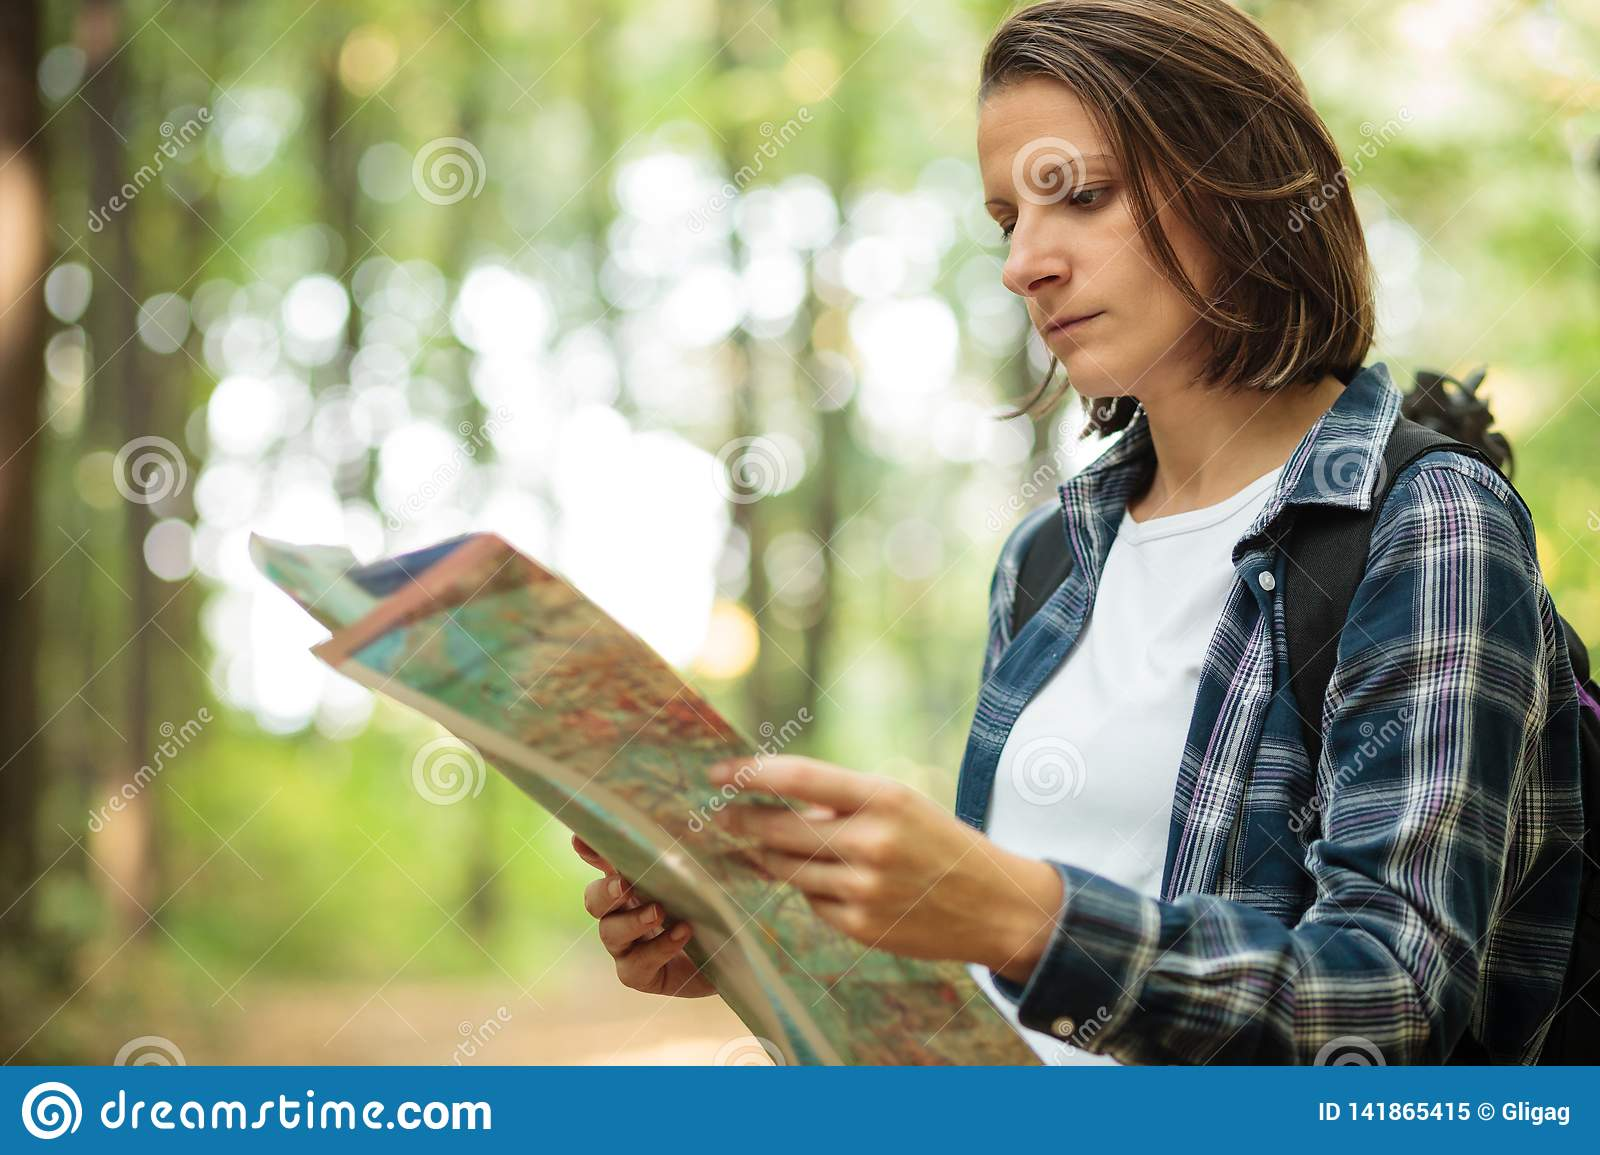 Serious young woman looking at the map and navigating while hiking through lush green forest